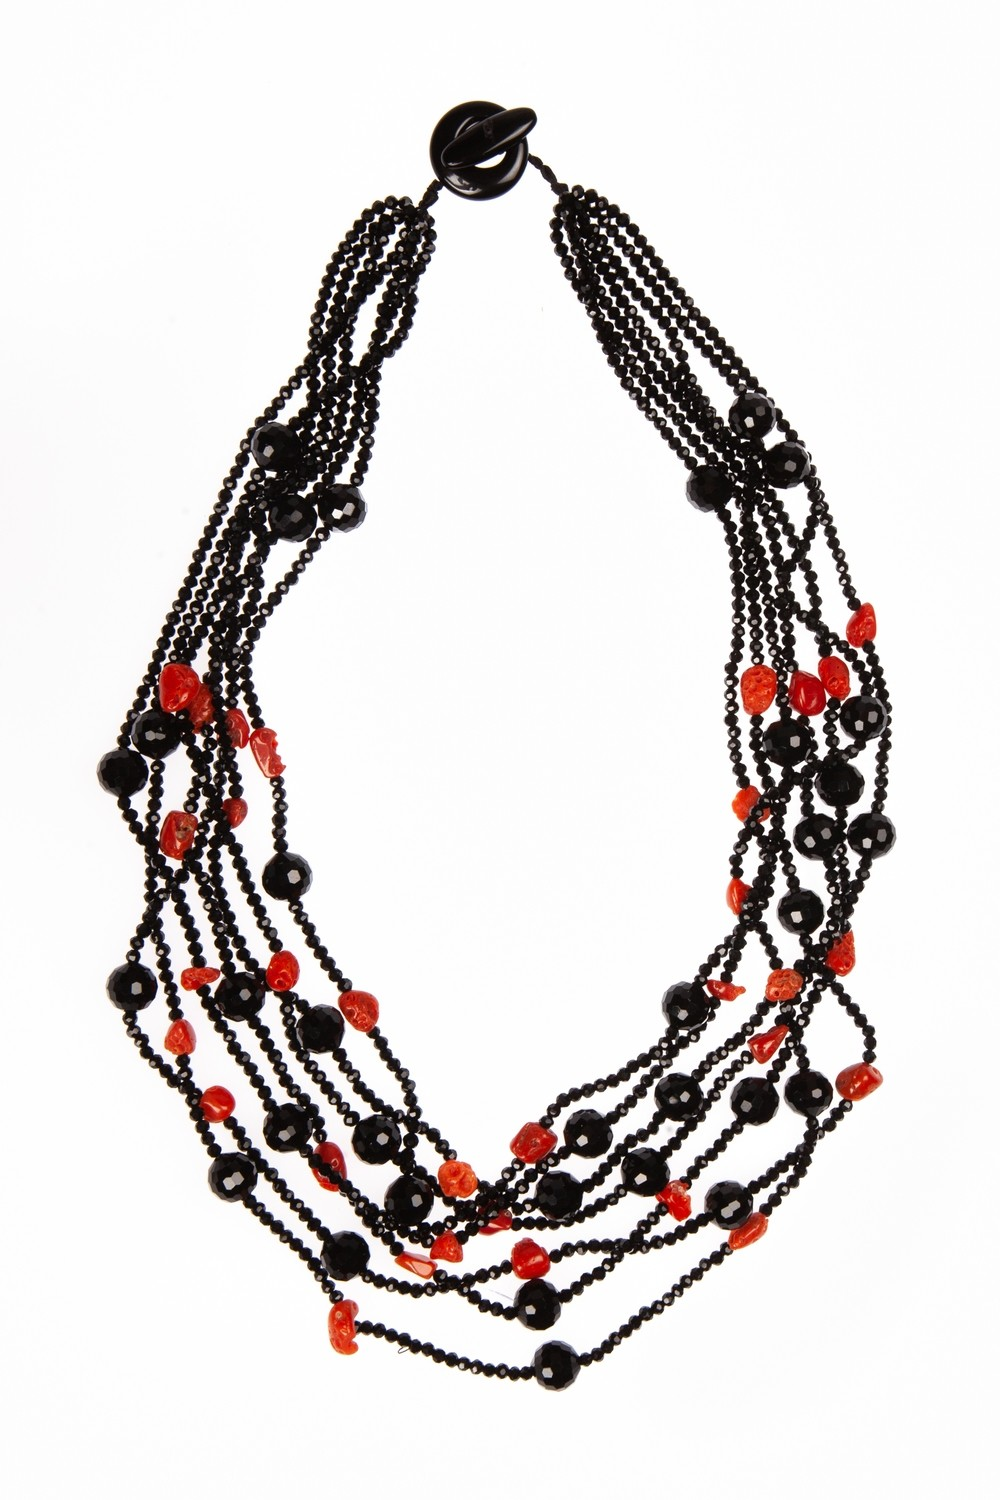 Collana multifilo in agata nera sfaccettata e pepite di corallo - Multi-strand necklace in faceted black agate and nuggets of Mediterranean red coral